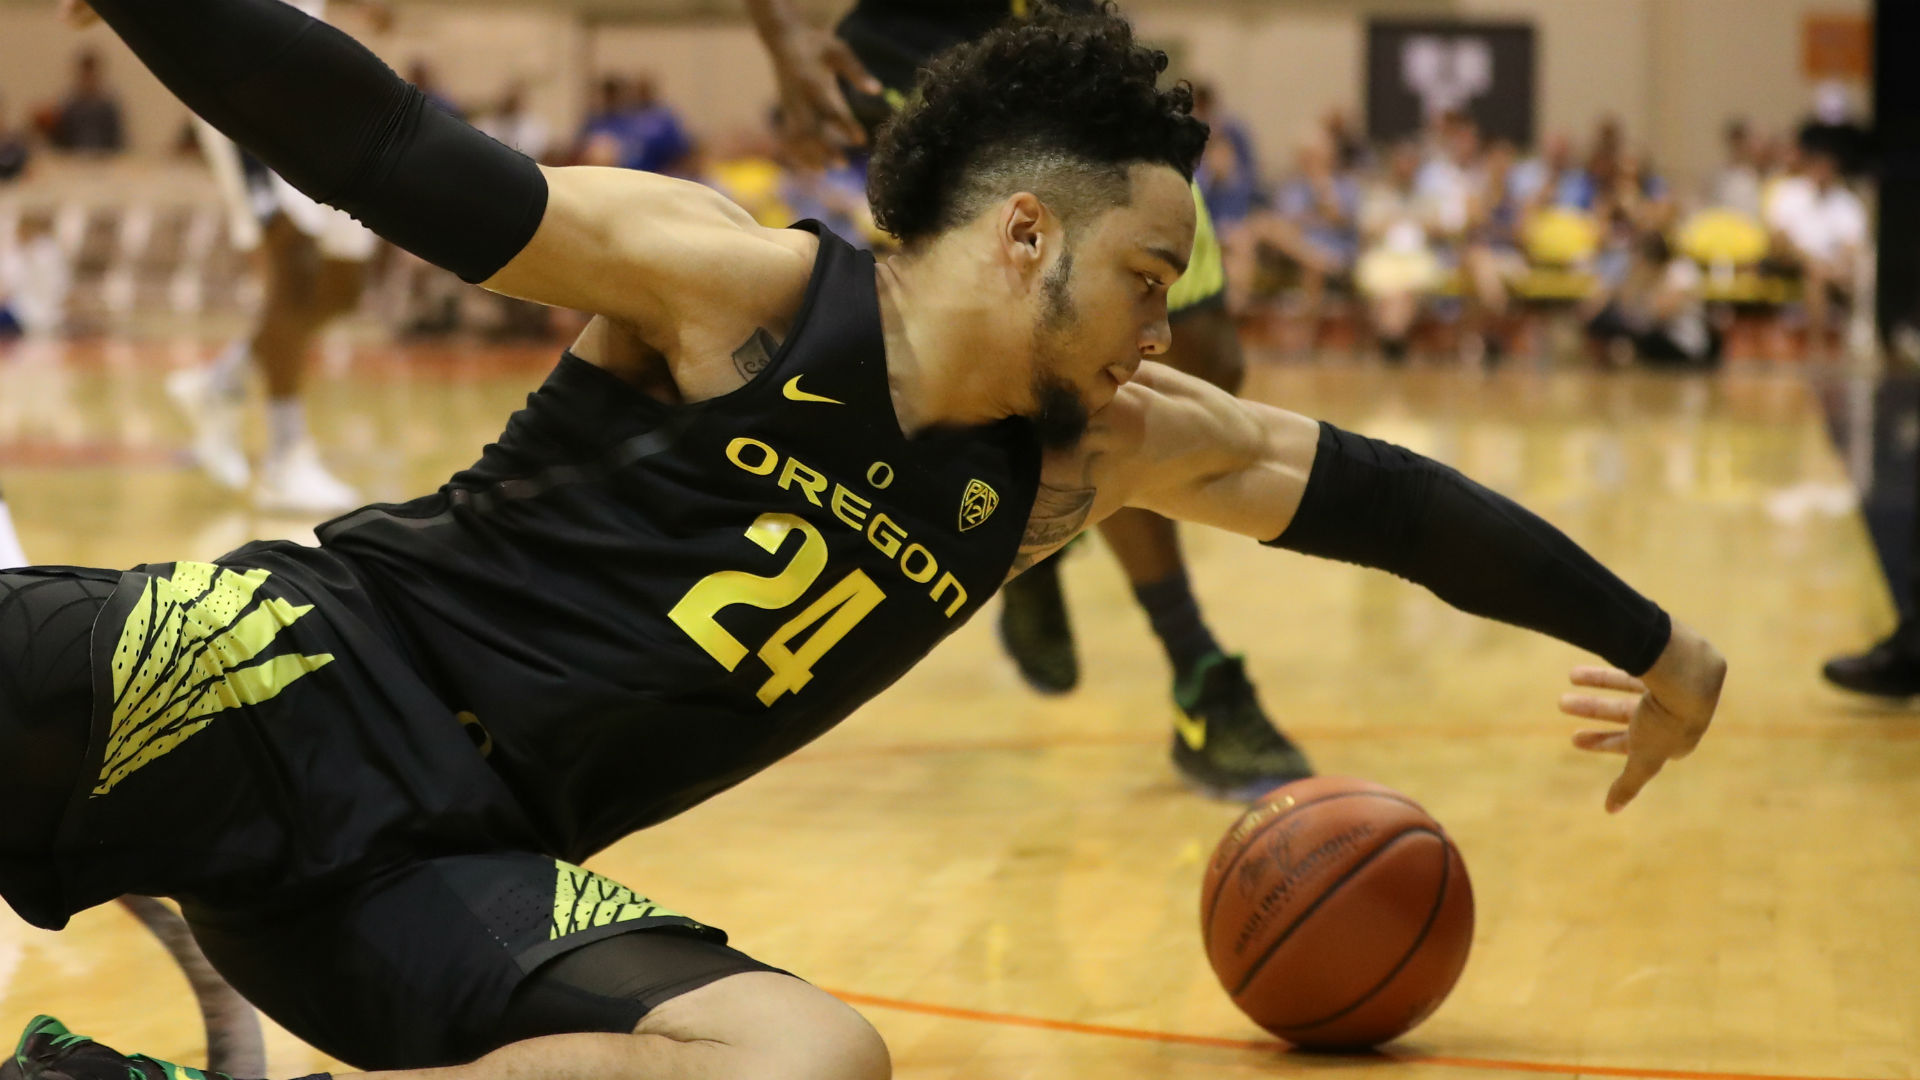 OR star Dillon Brooks ejected for kick to opponent's groin